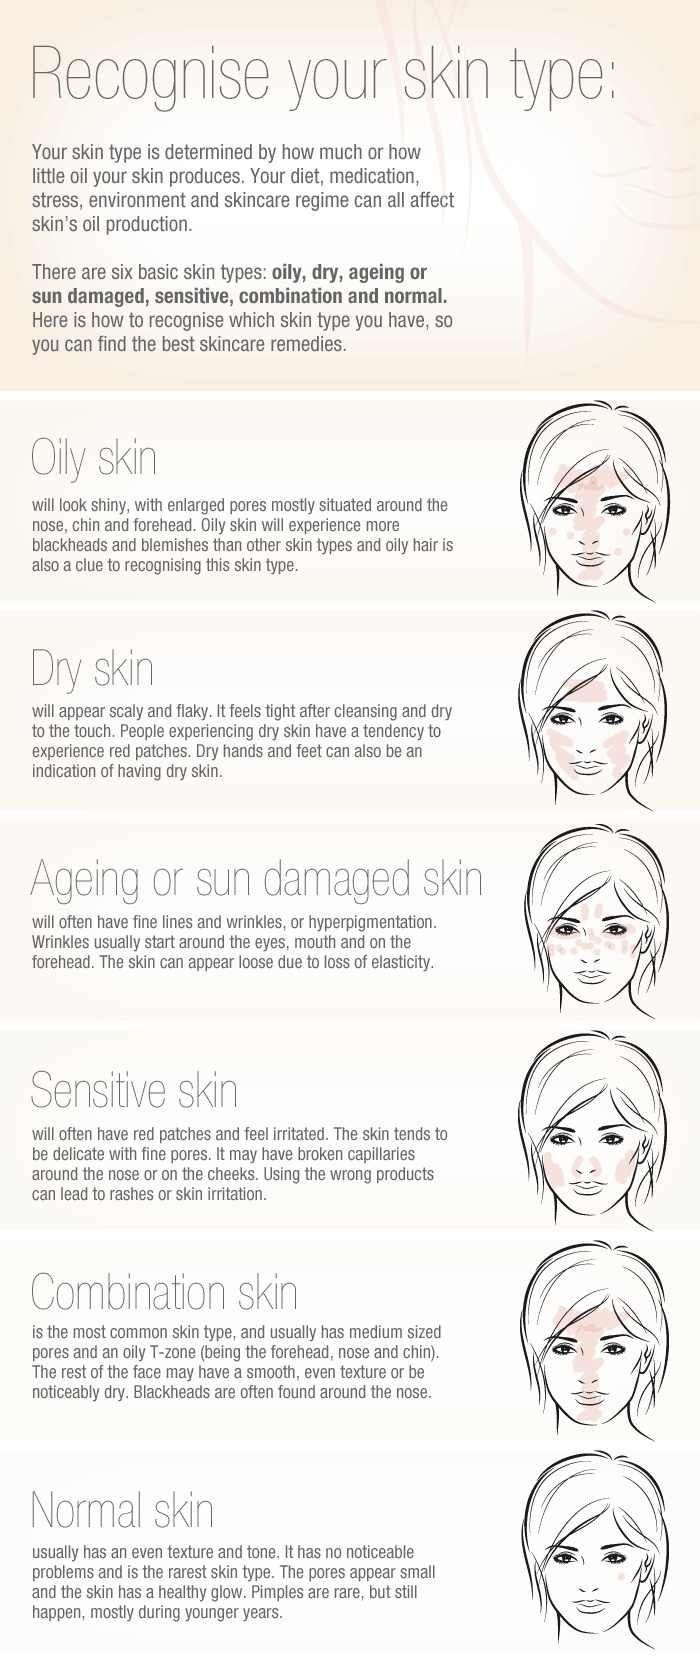 Great visual for a hand out when discussing skintypes